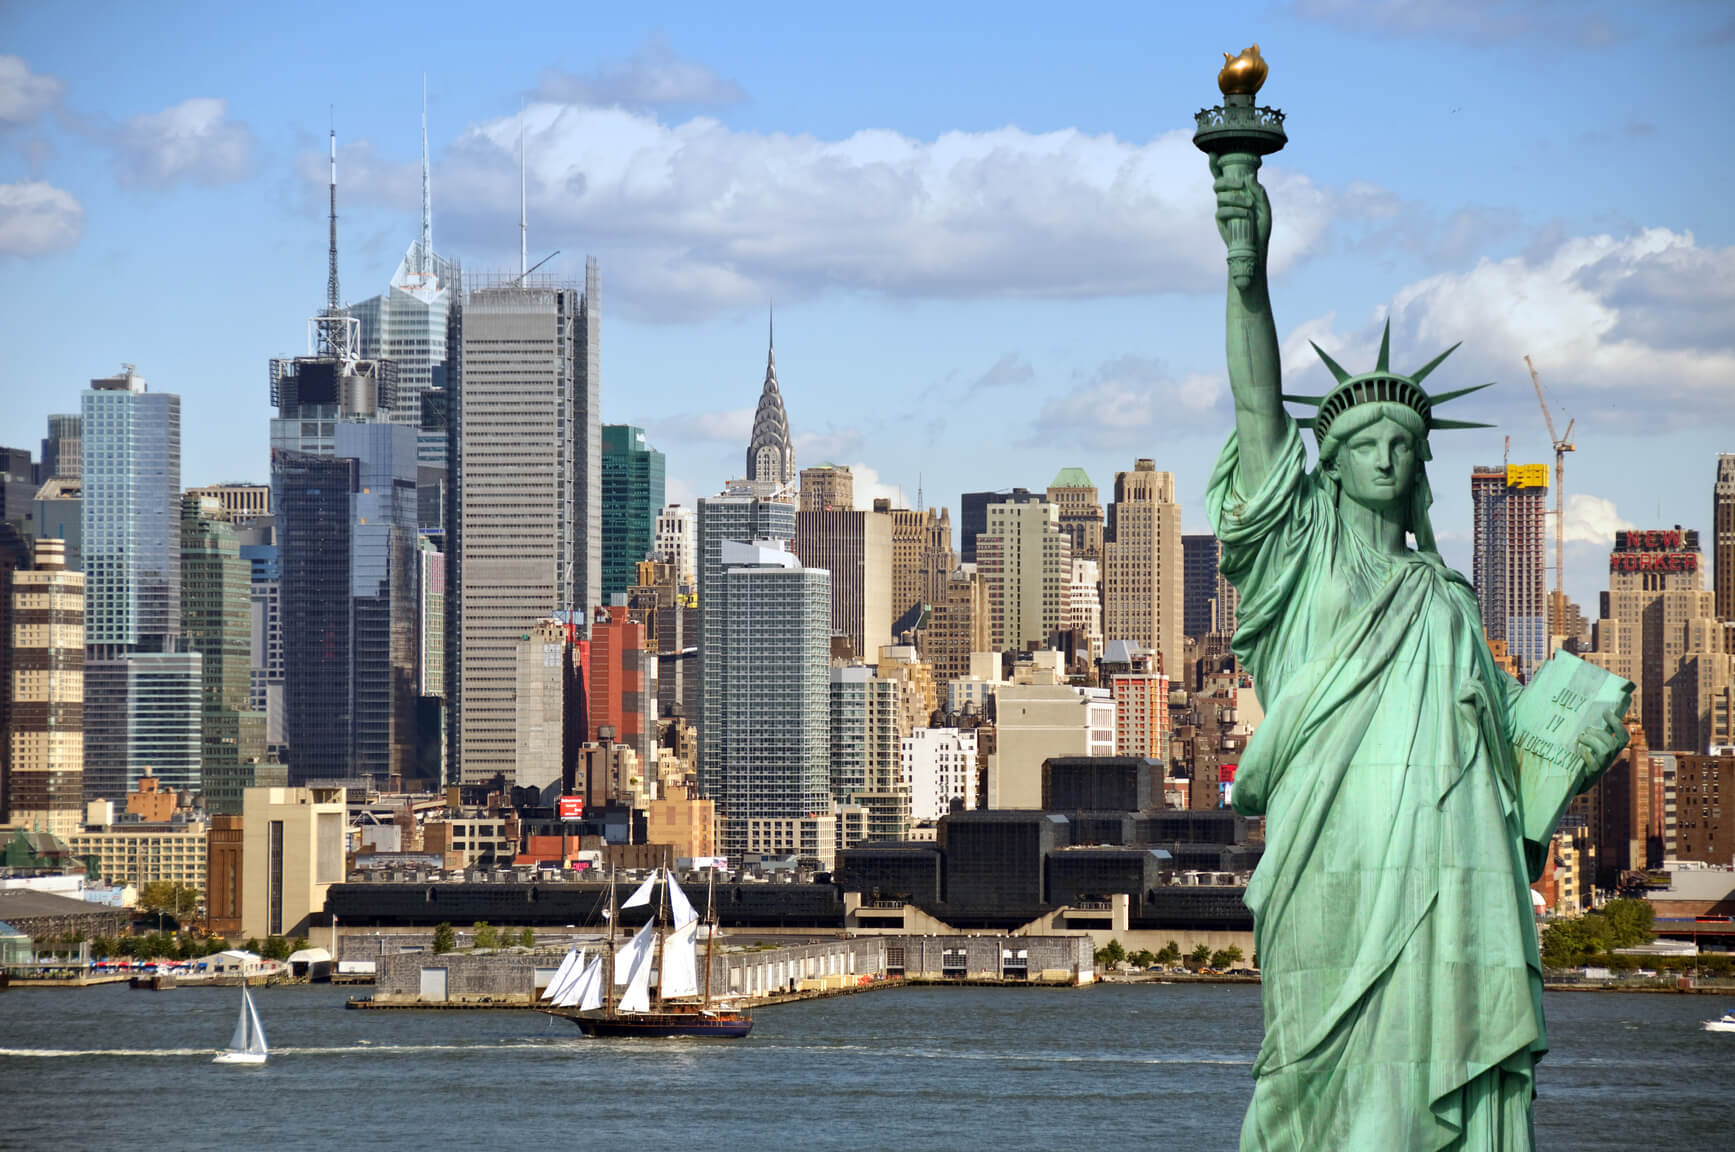 HOT!! Paris, France to New York, USA for only €180 roundtrip (Sep-Mar dates)